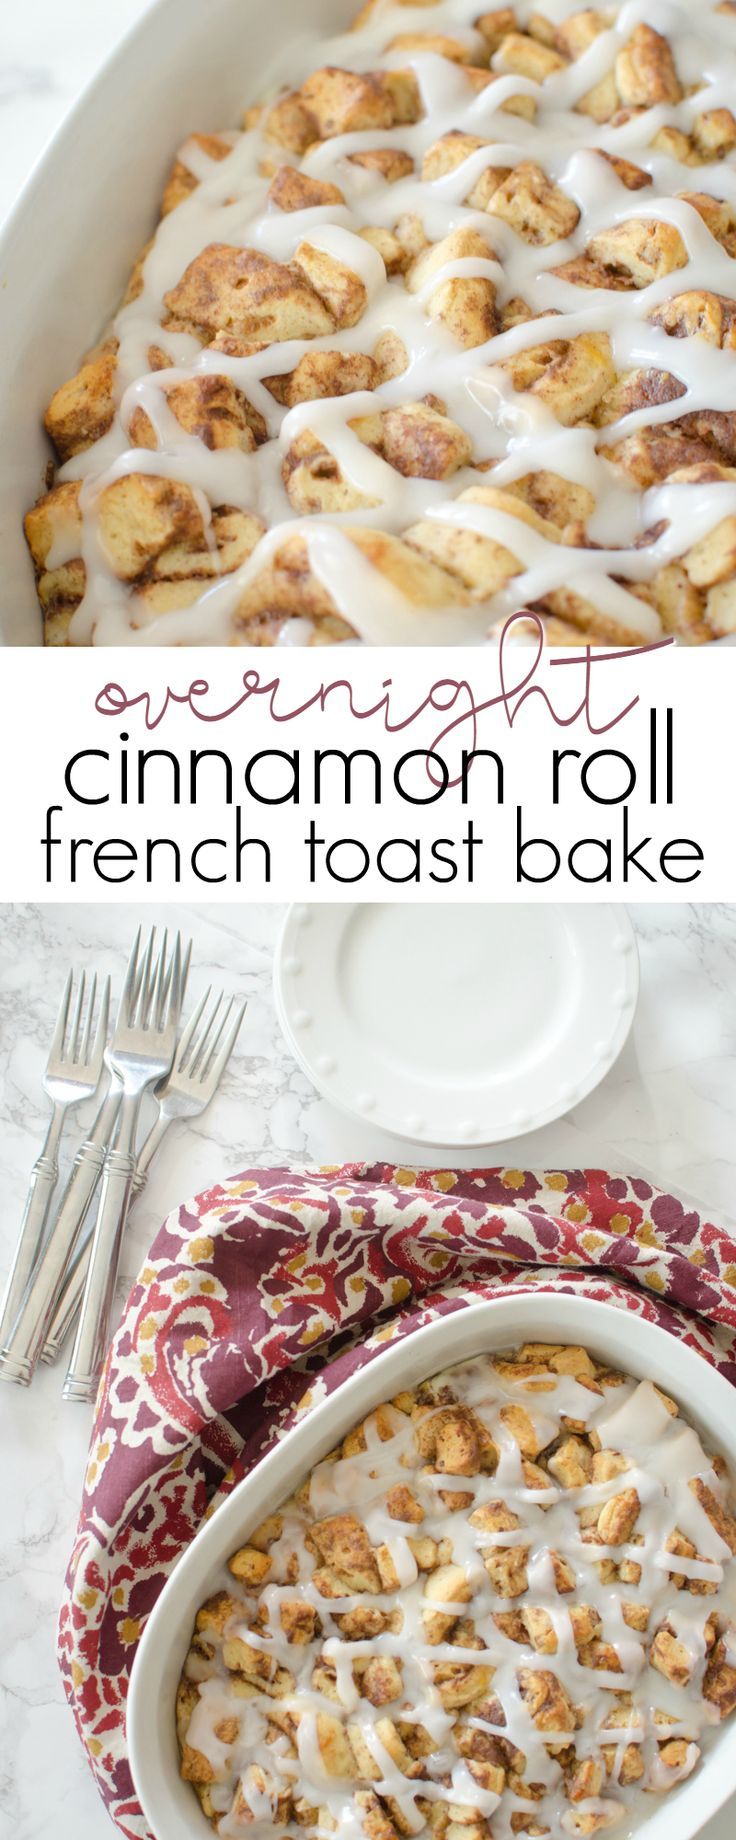 Start a new holiday tradition with Overnight Cinnamon Roll French Toast Bake for breakfast! @Pillsbury #ItsBakingSeason AD